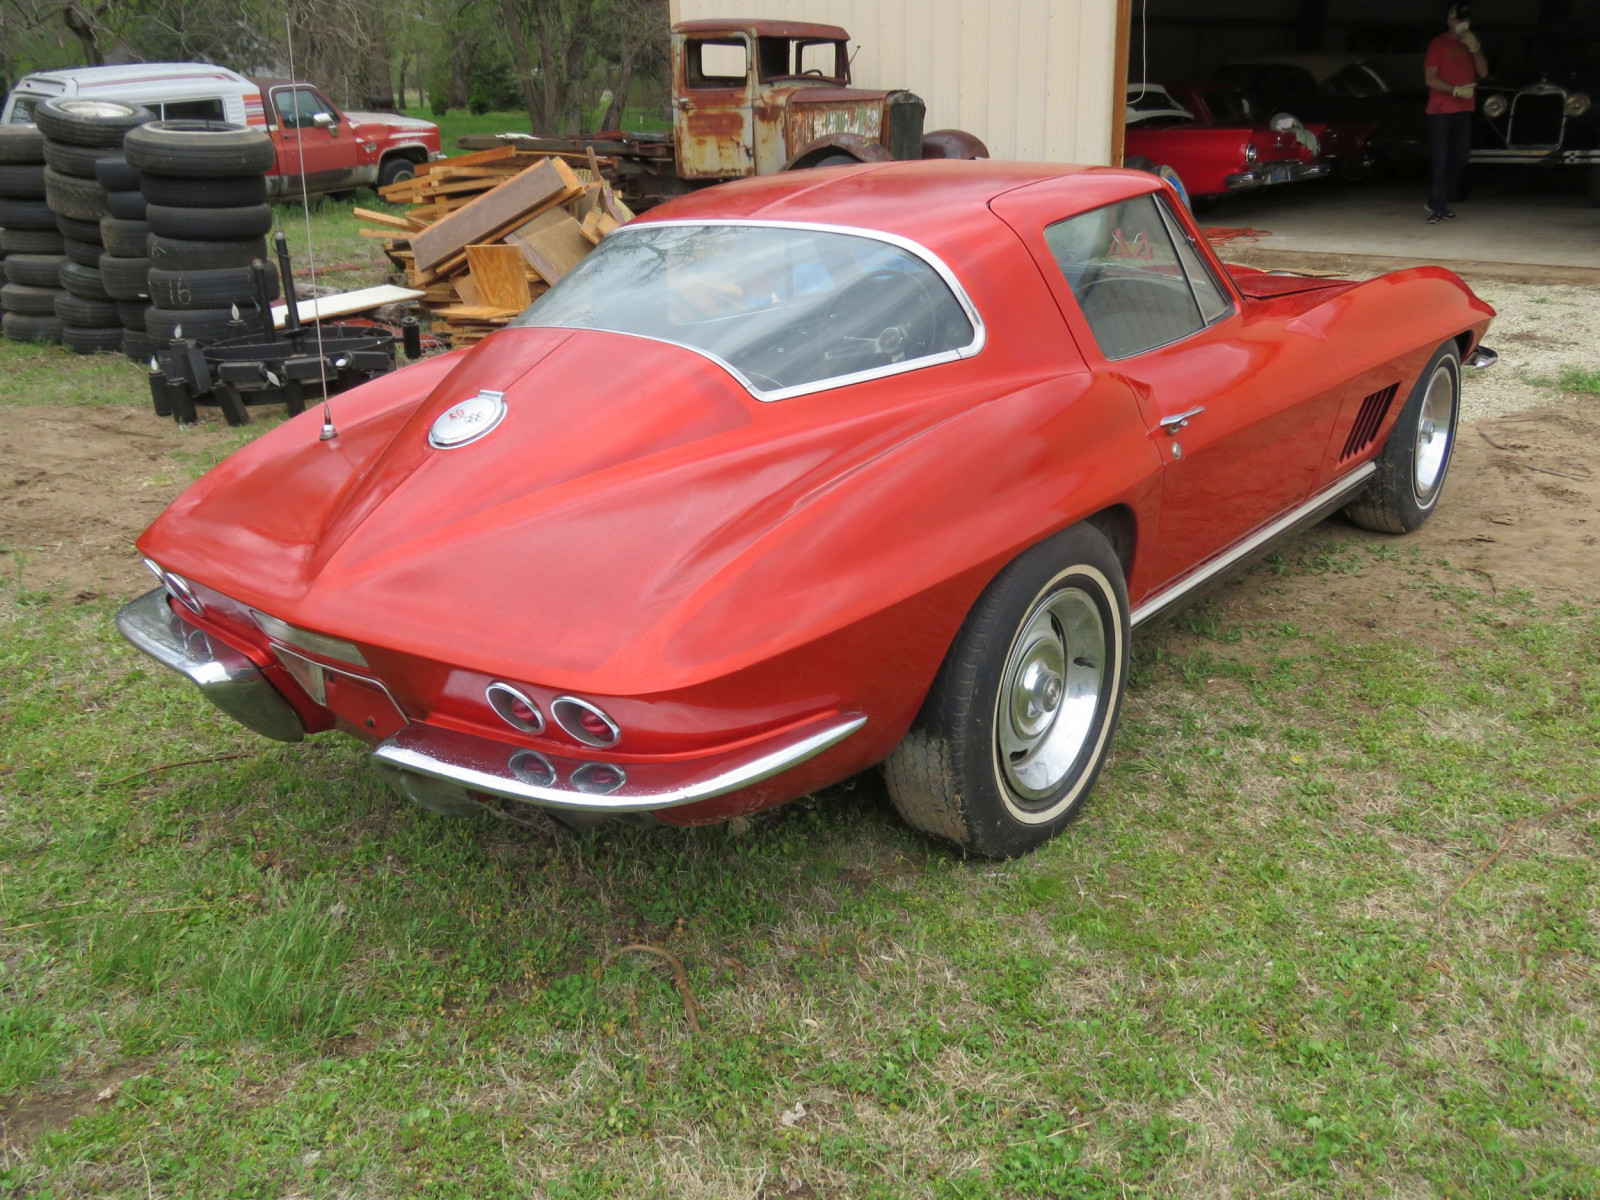 1967 CHEVROLET CORVETTE STINGRAY COUPE - Image 7